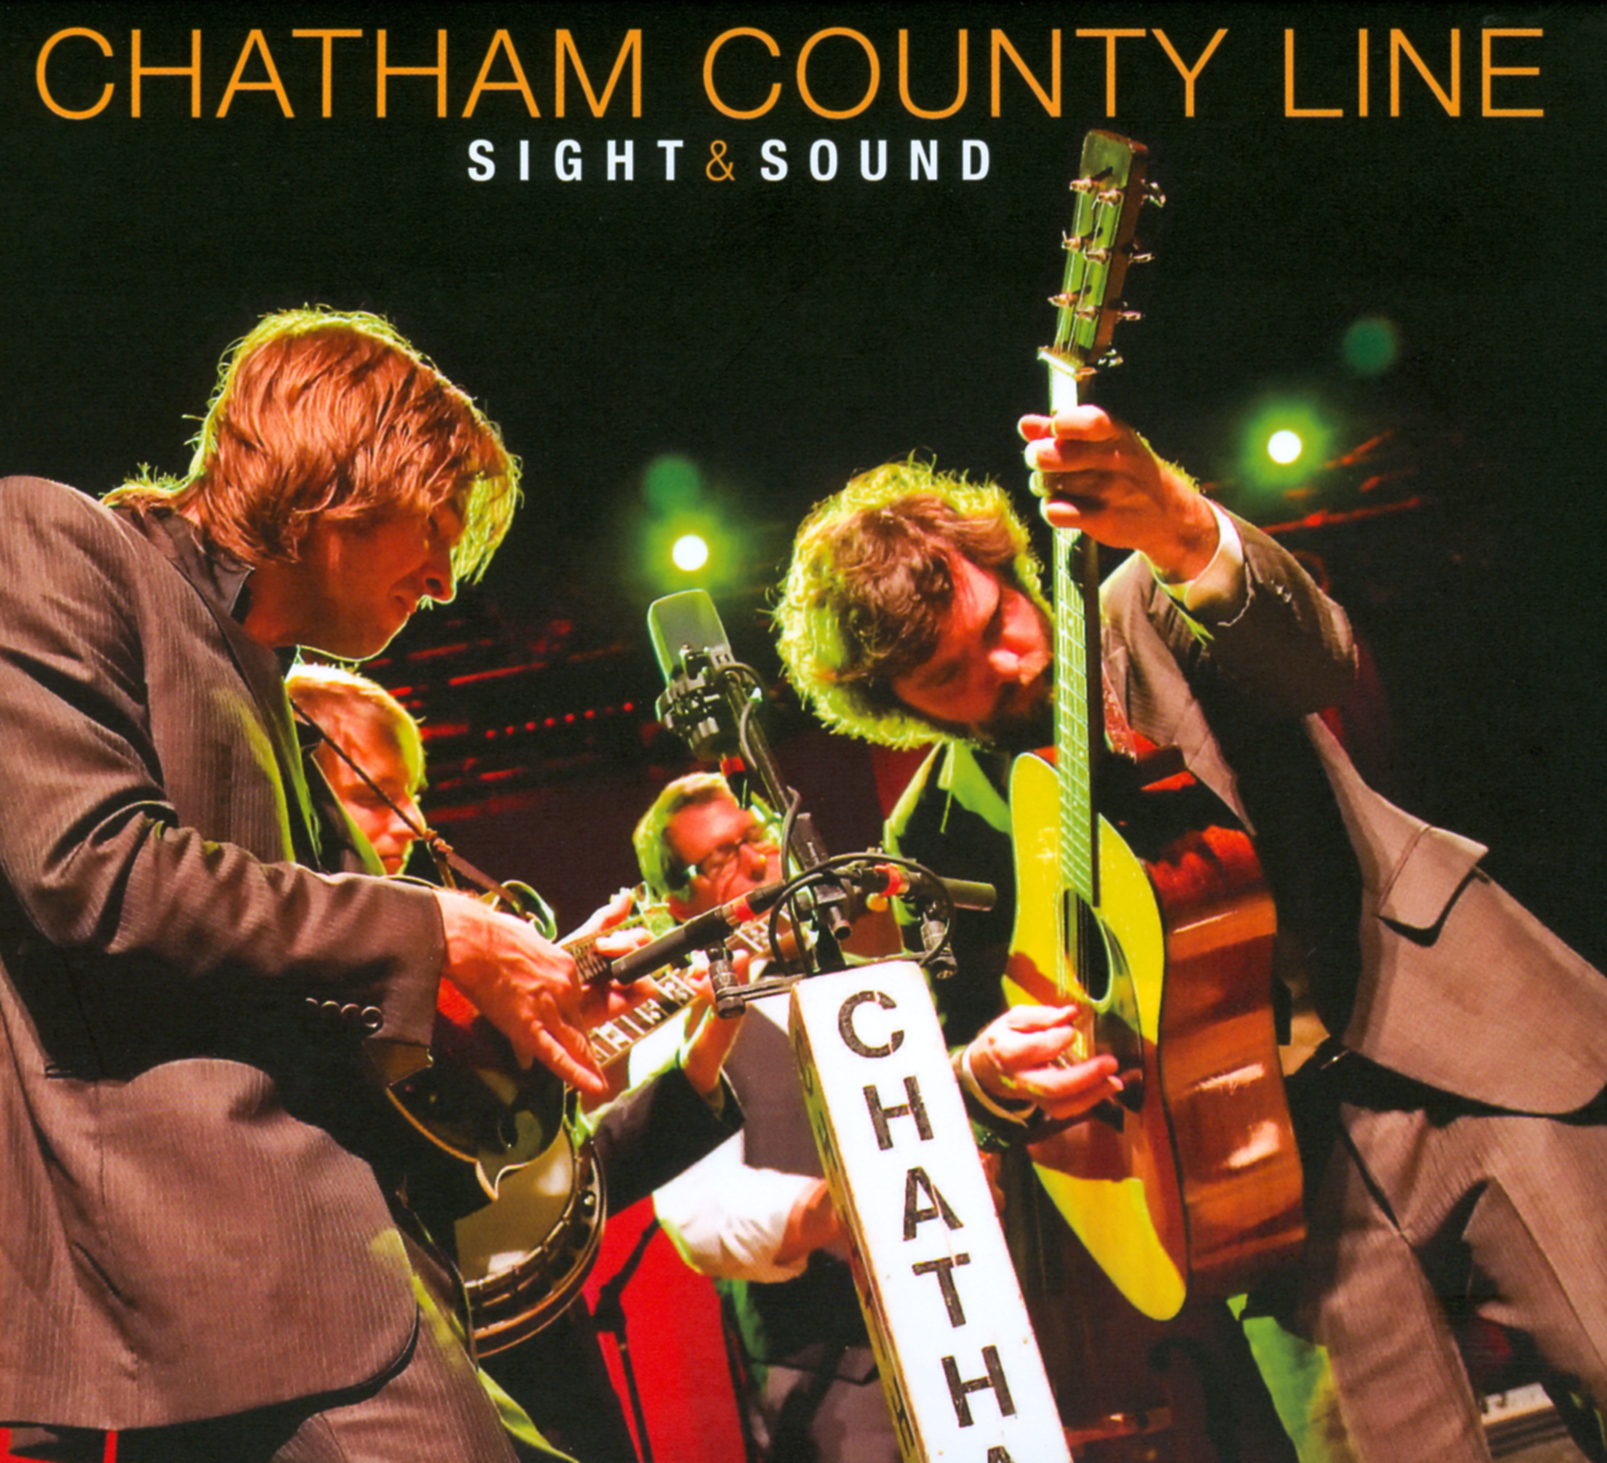 Chatham County Line: Sight & Sound